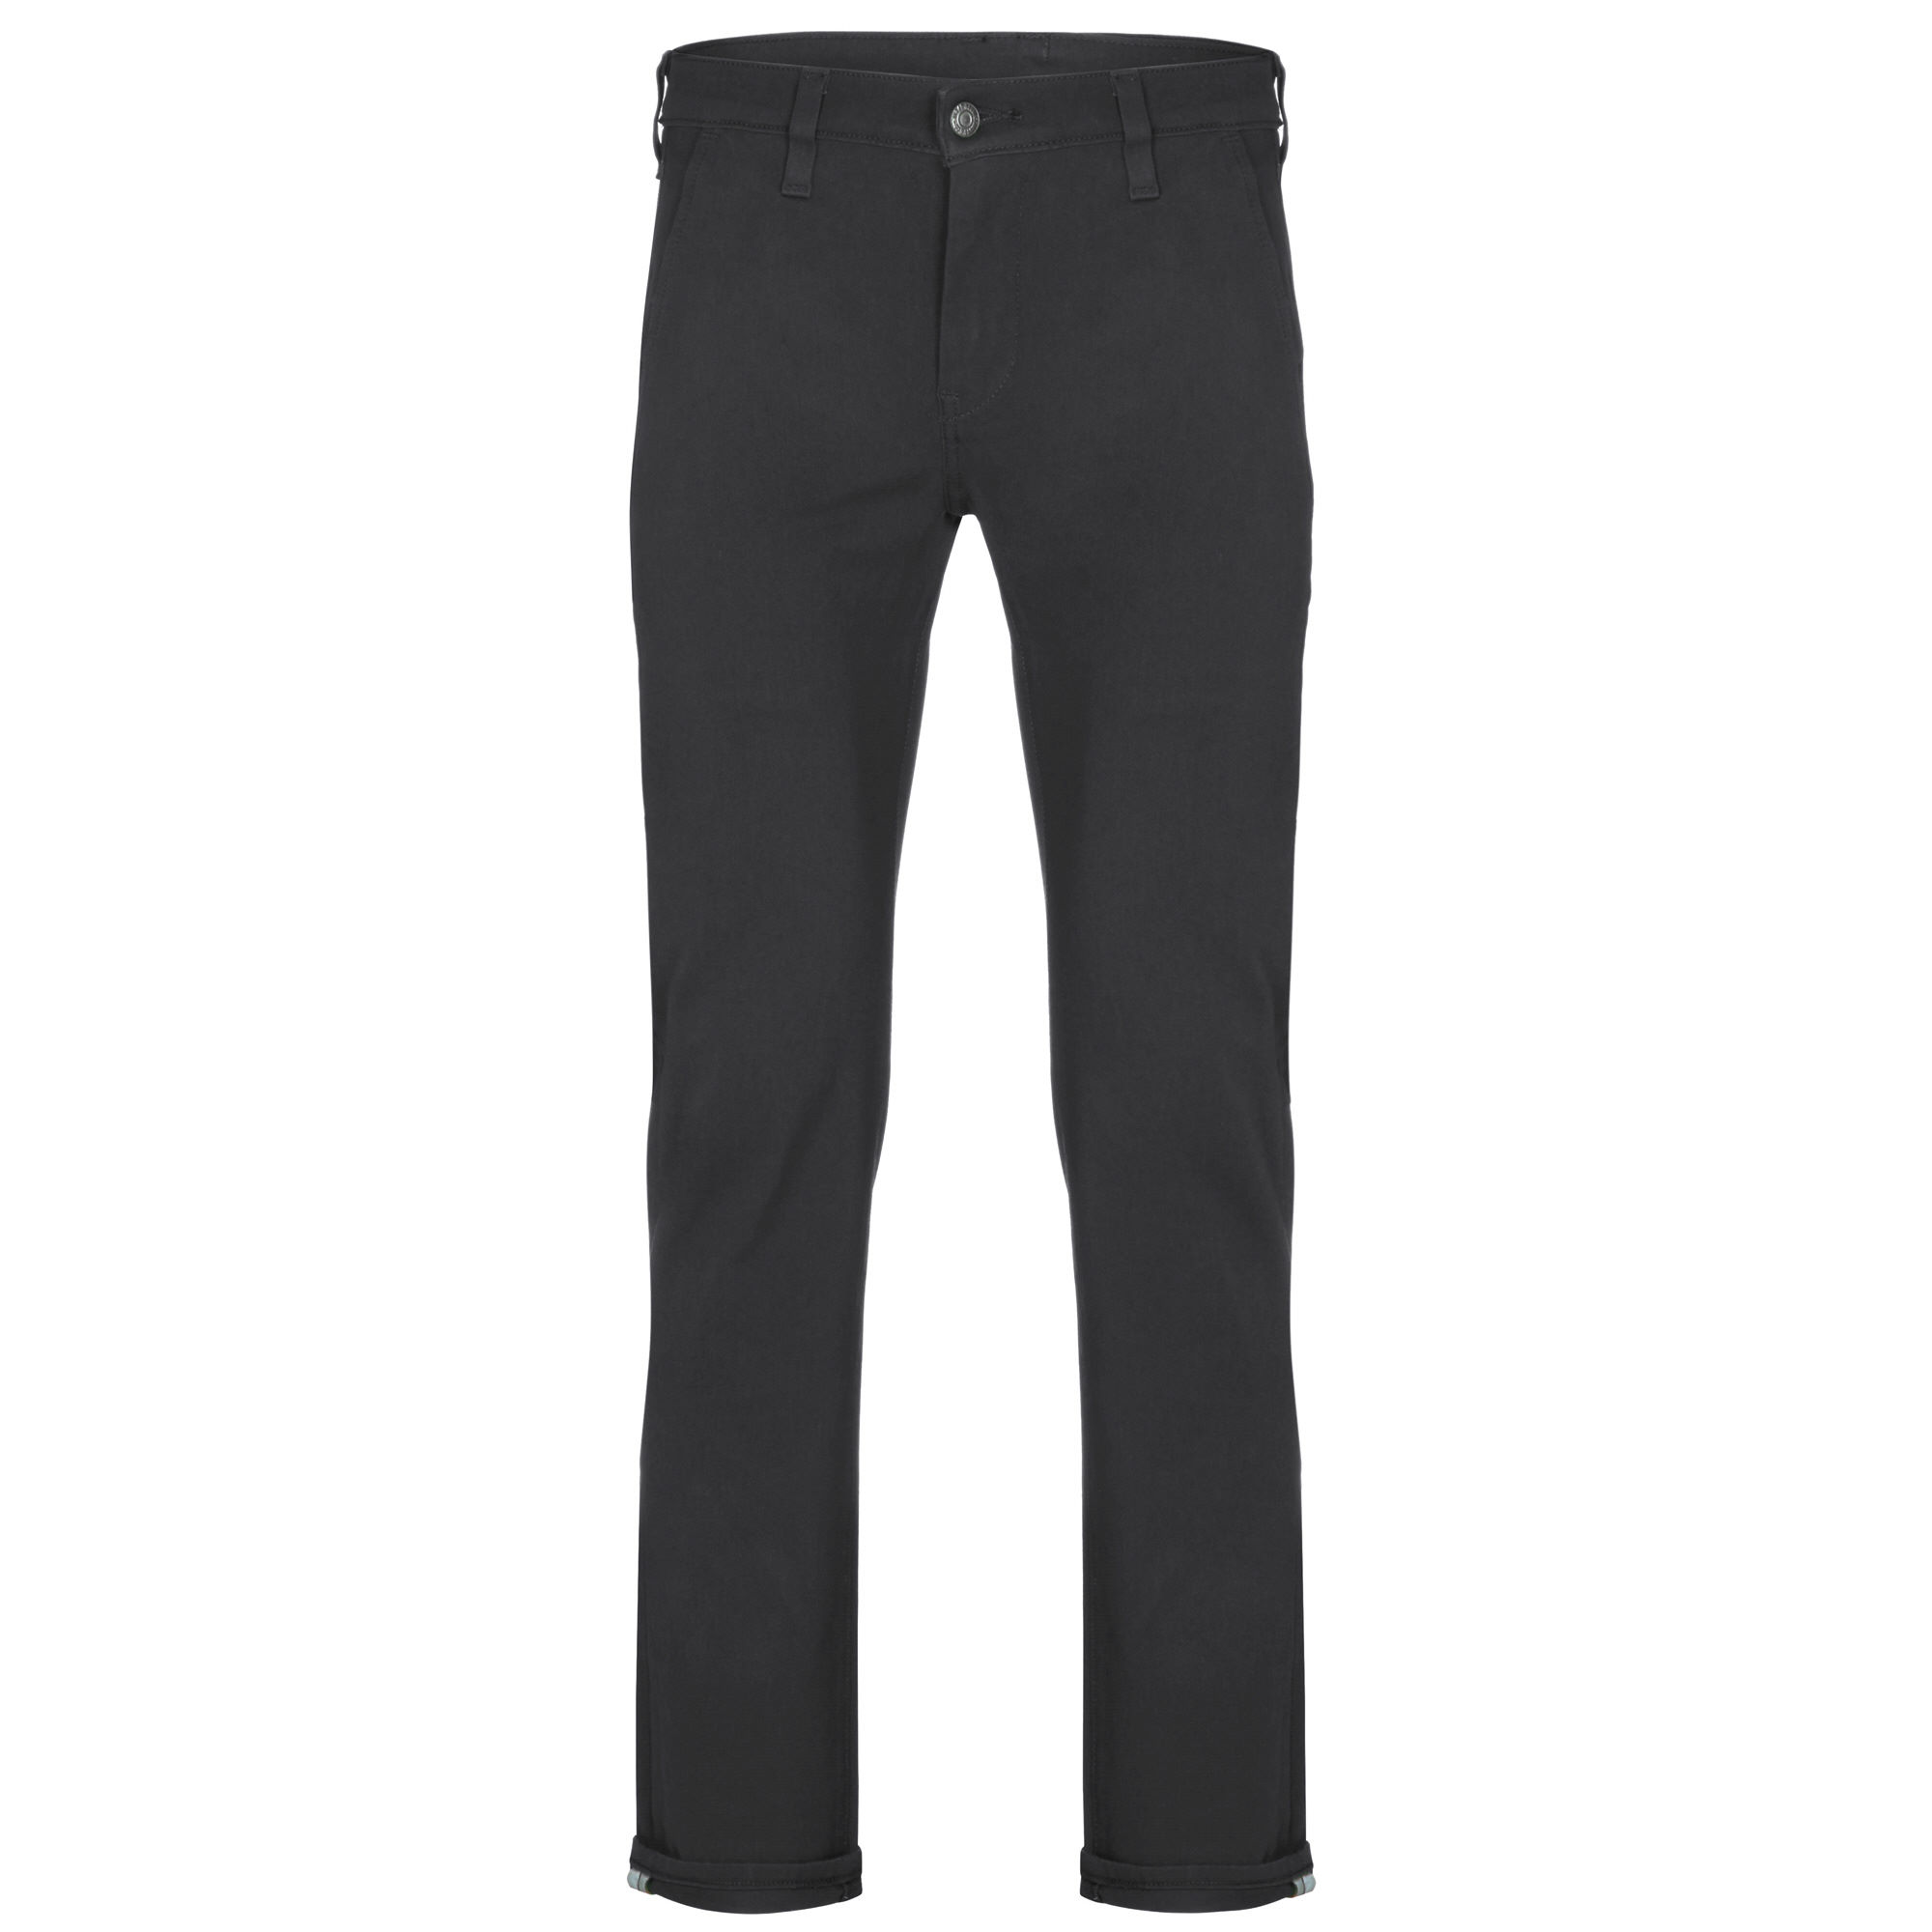 wiggle levi 39 s commuter 511 trouser casual trousers. Black Bedroom Furniture Sets. Home Design Ideas